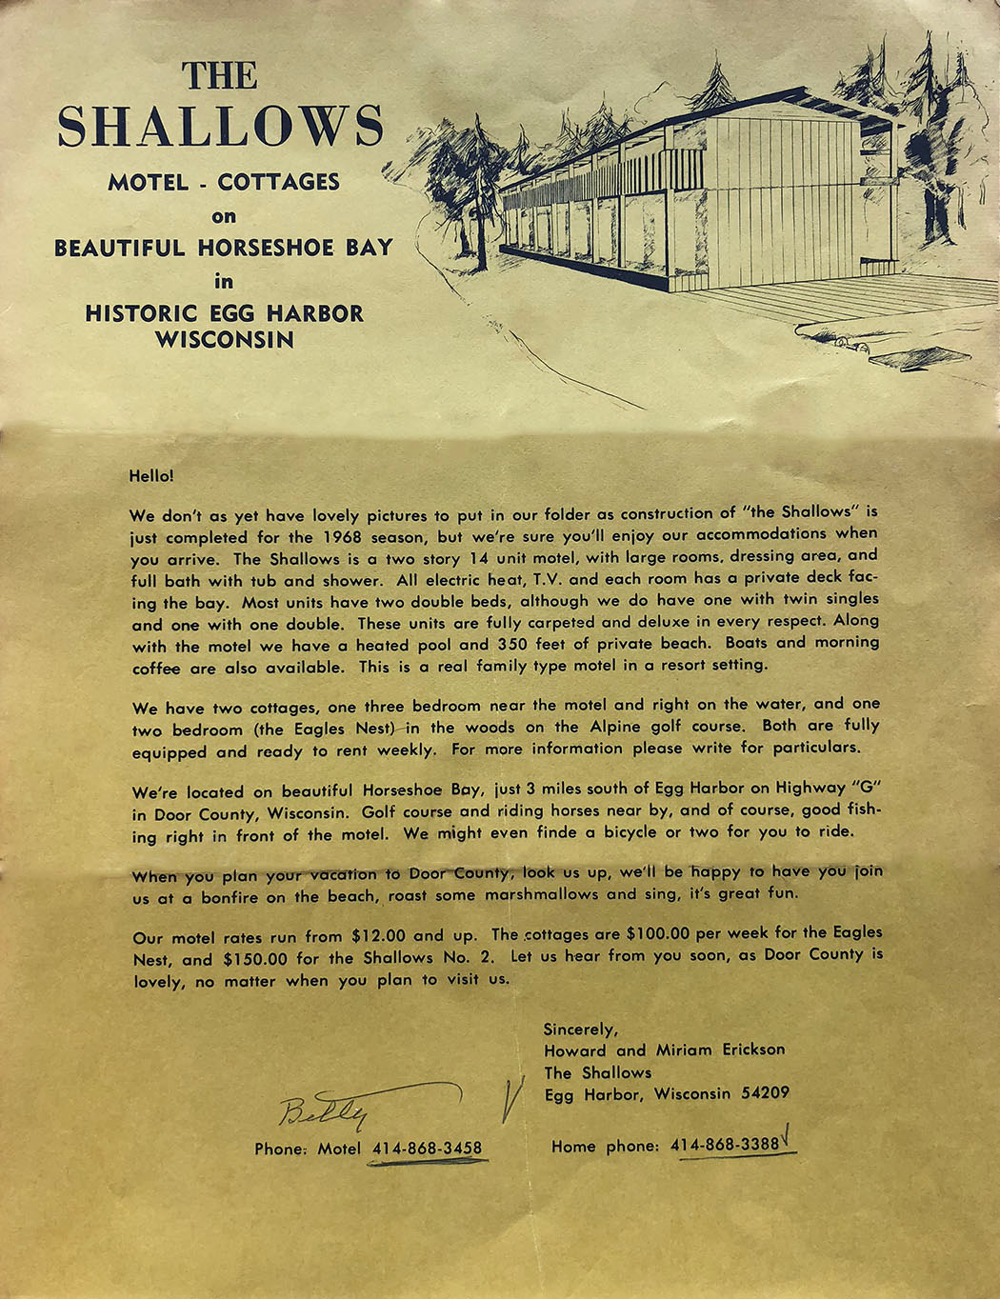 1968 letter from owners introducing the Shallows Resort